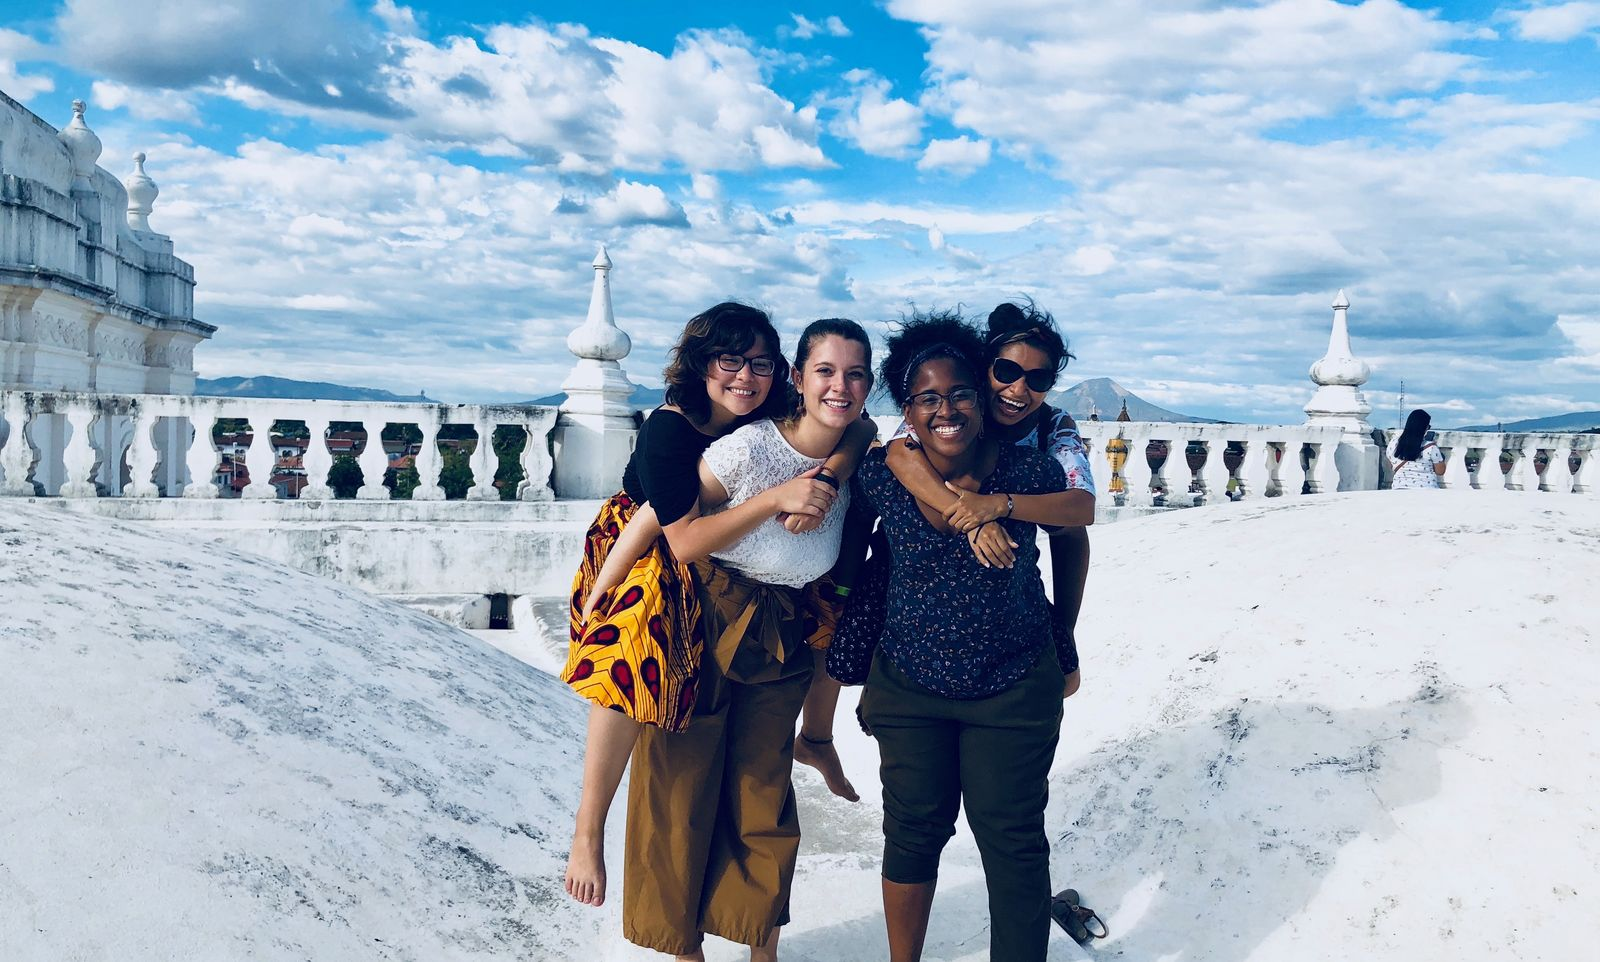 Managua, Nicaragua Jesuit Volunteers prior to JV community house closure in 2017 due to civil unrest in the country. JVC Nicaragua exploring the roof of Basilica de la Asunción in Leon. Pictured left to right is Glendys Orellana (2016-18), Rachel Schwarz (2017-19), Paola Joaquin Rosso (2017-19), and Luvy Martinez, a friend and coworker. Photograph taken by a passerby.